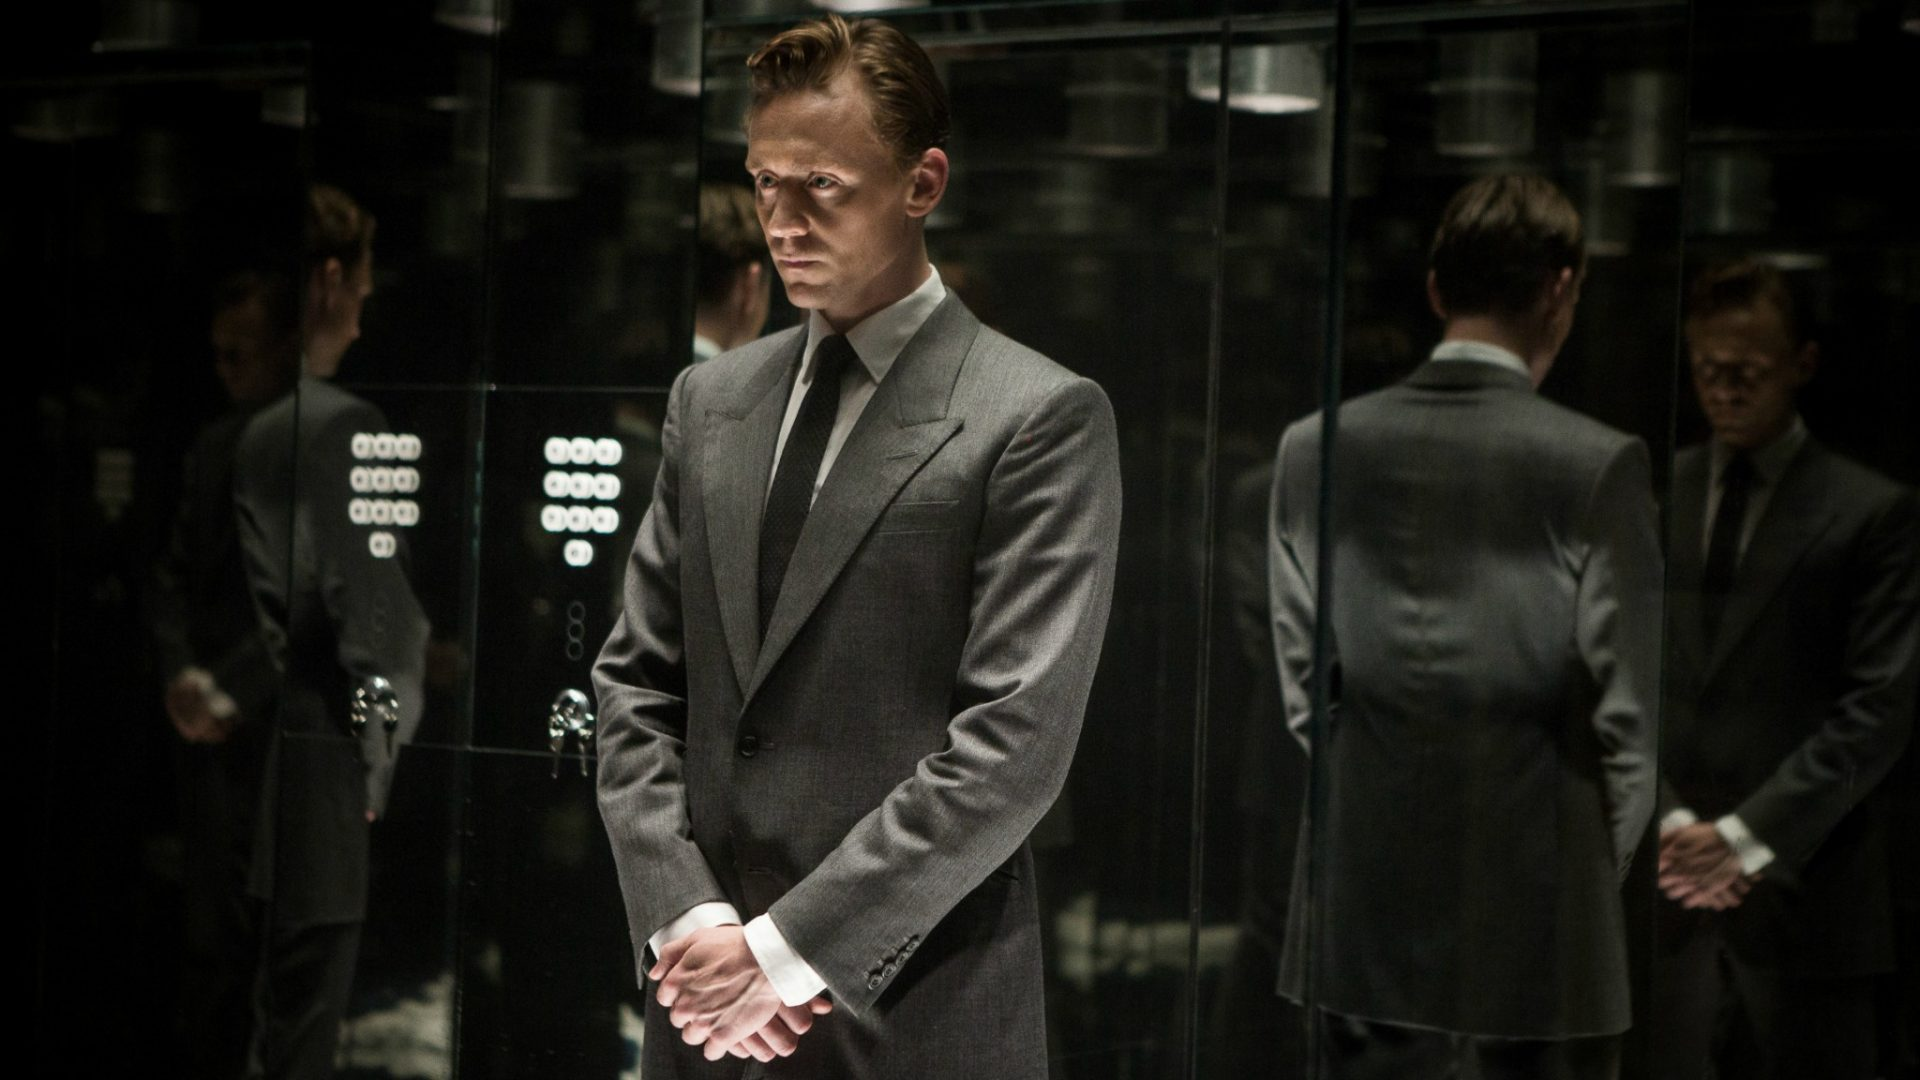 Tom Hiddleston's James Bond audition in High-Rise